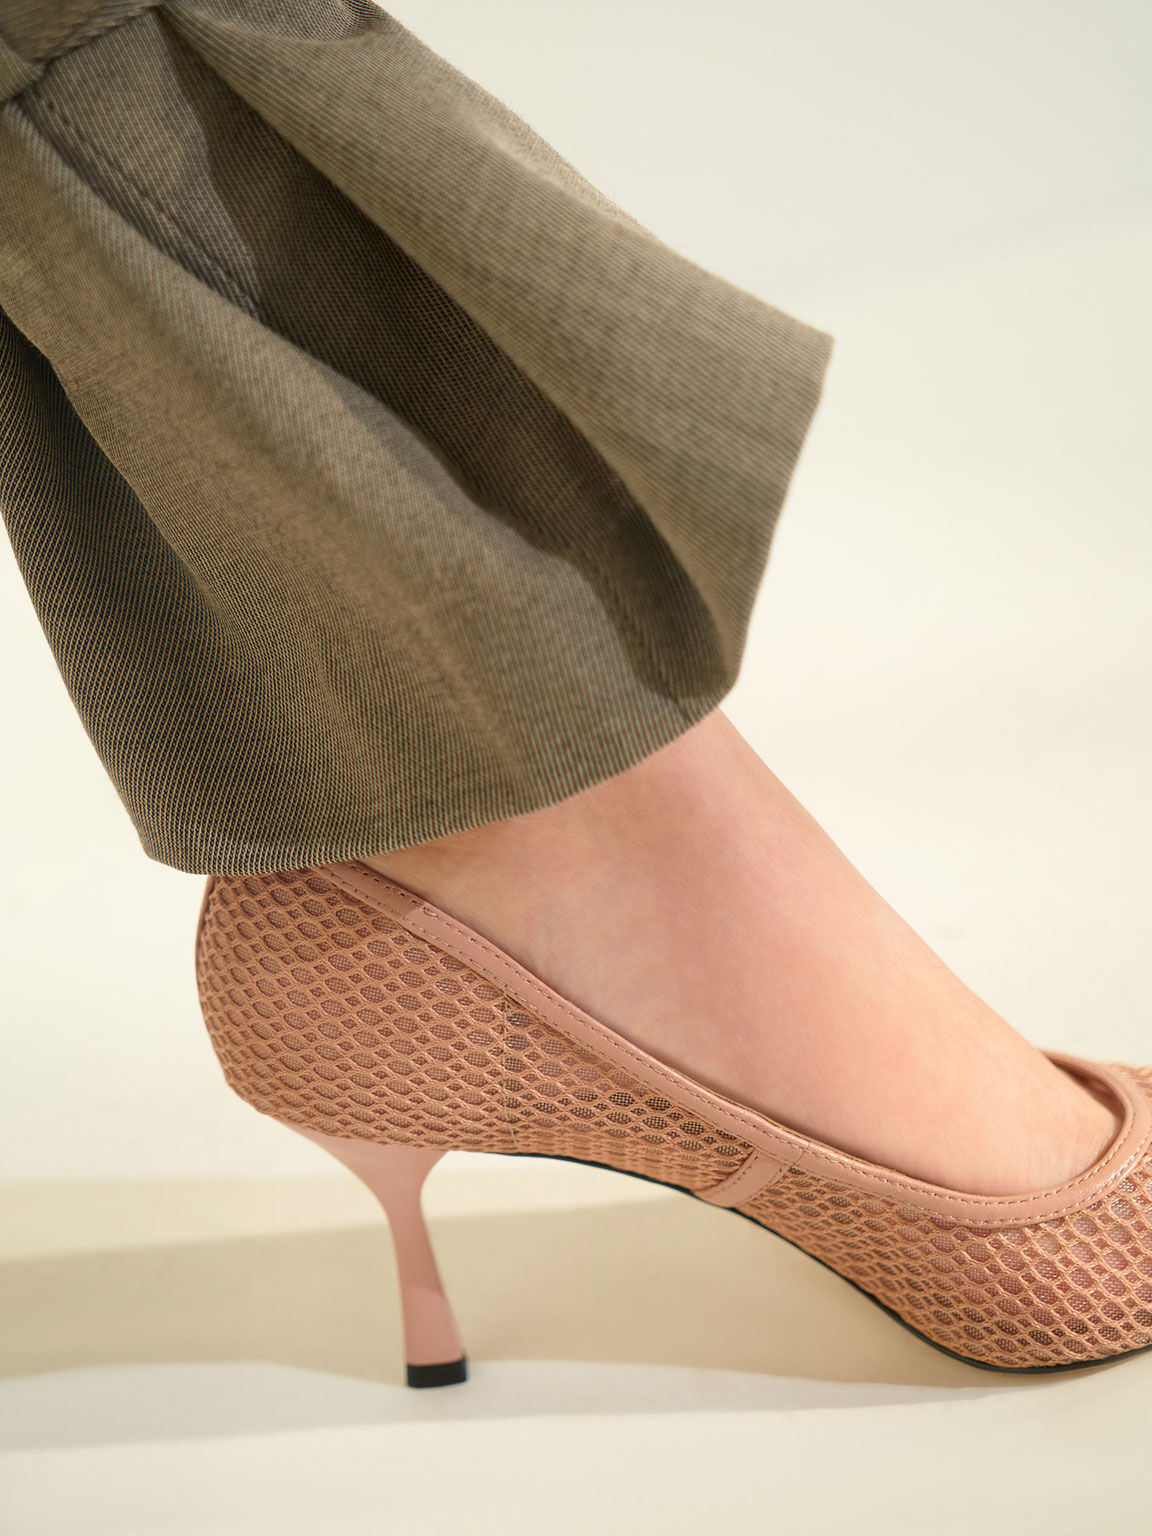 Leather Mesh Pumps, Nude, hi-res